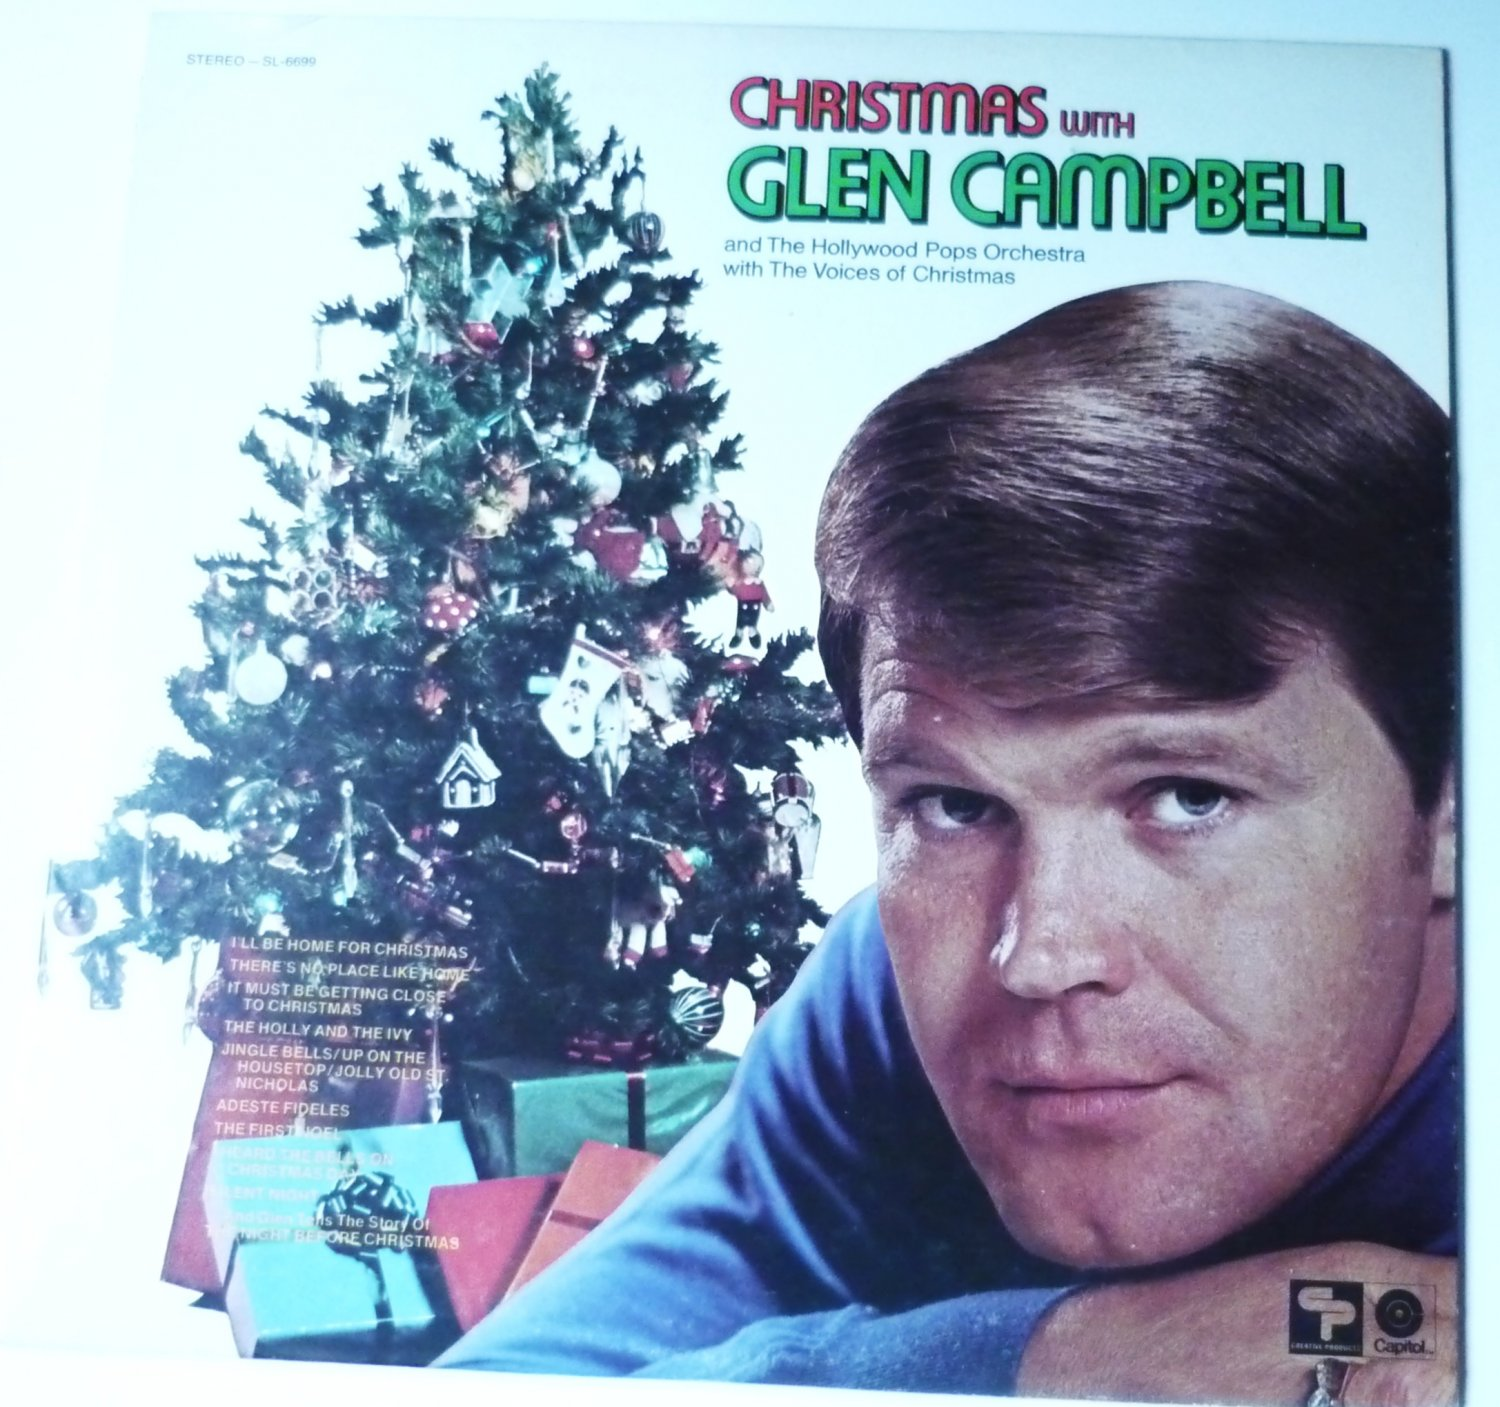 Christmas with Glen Campbell lp SL6699